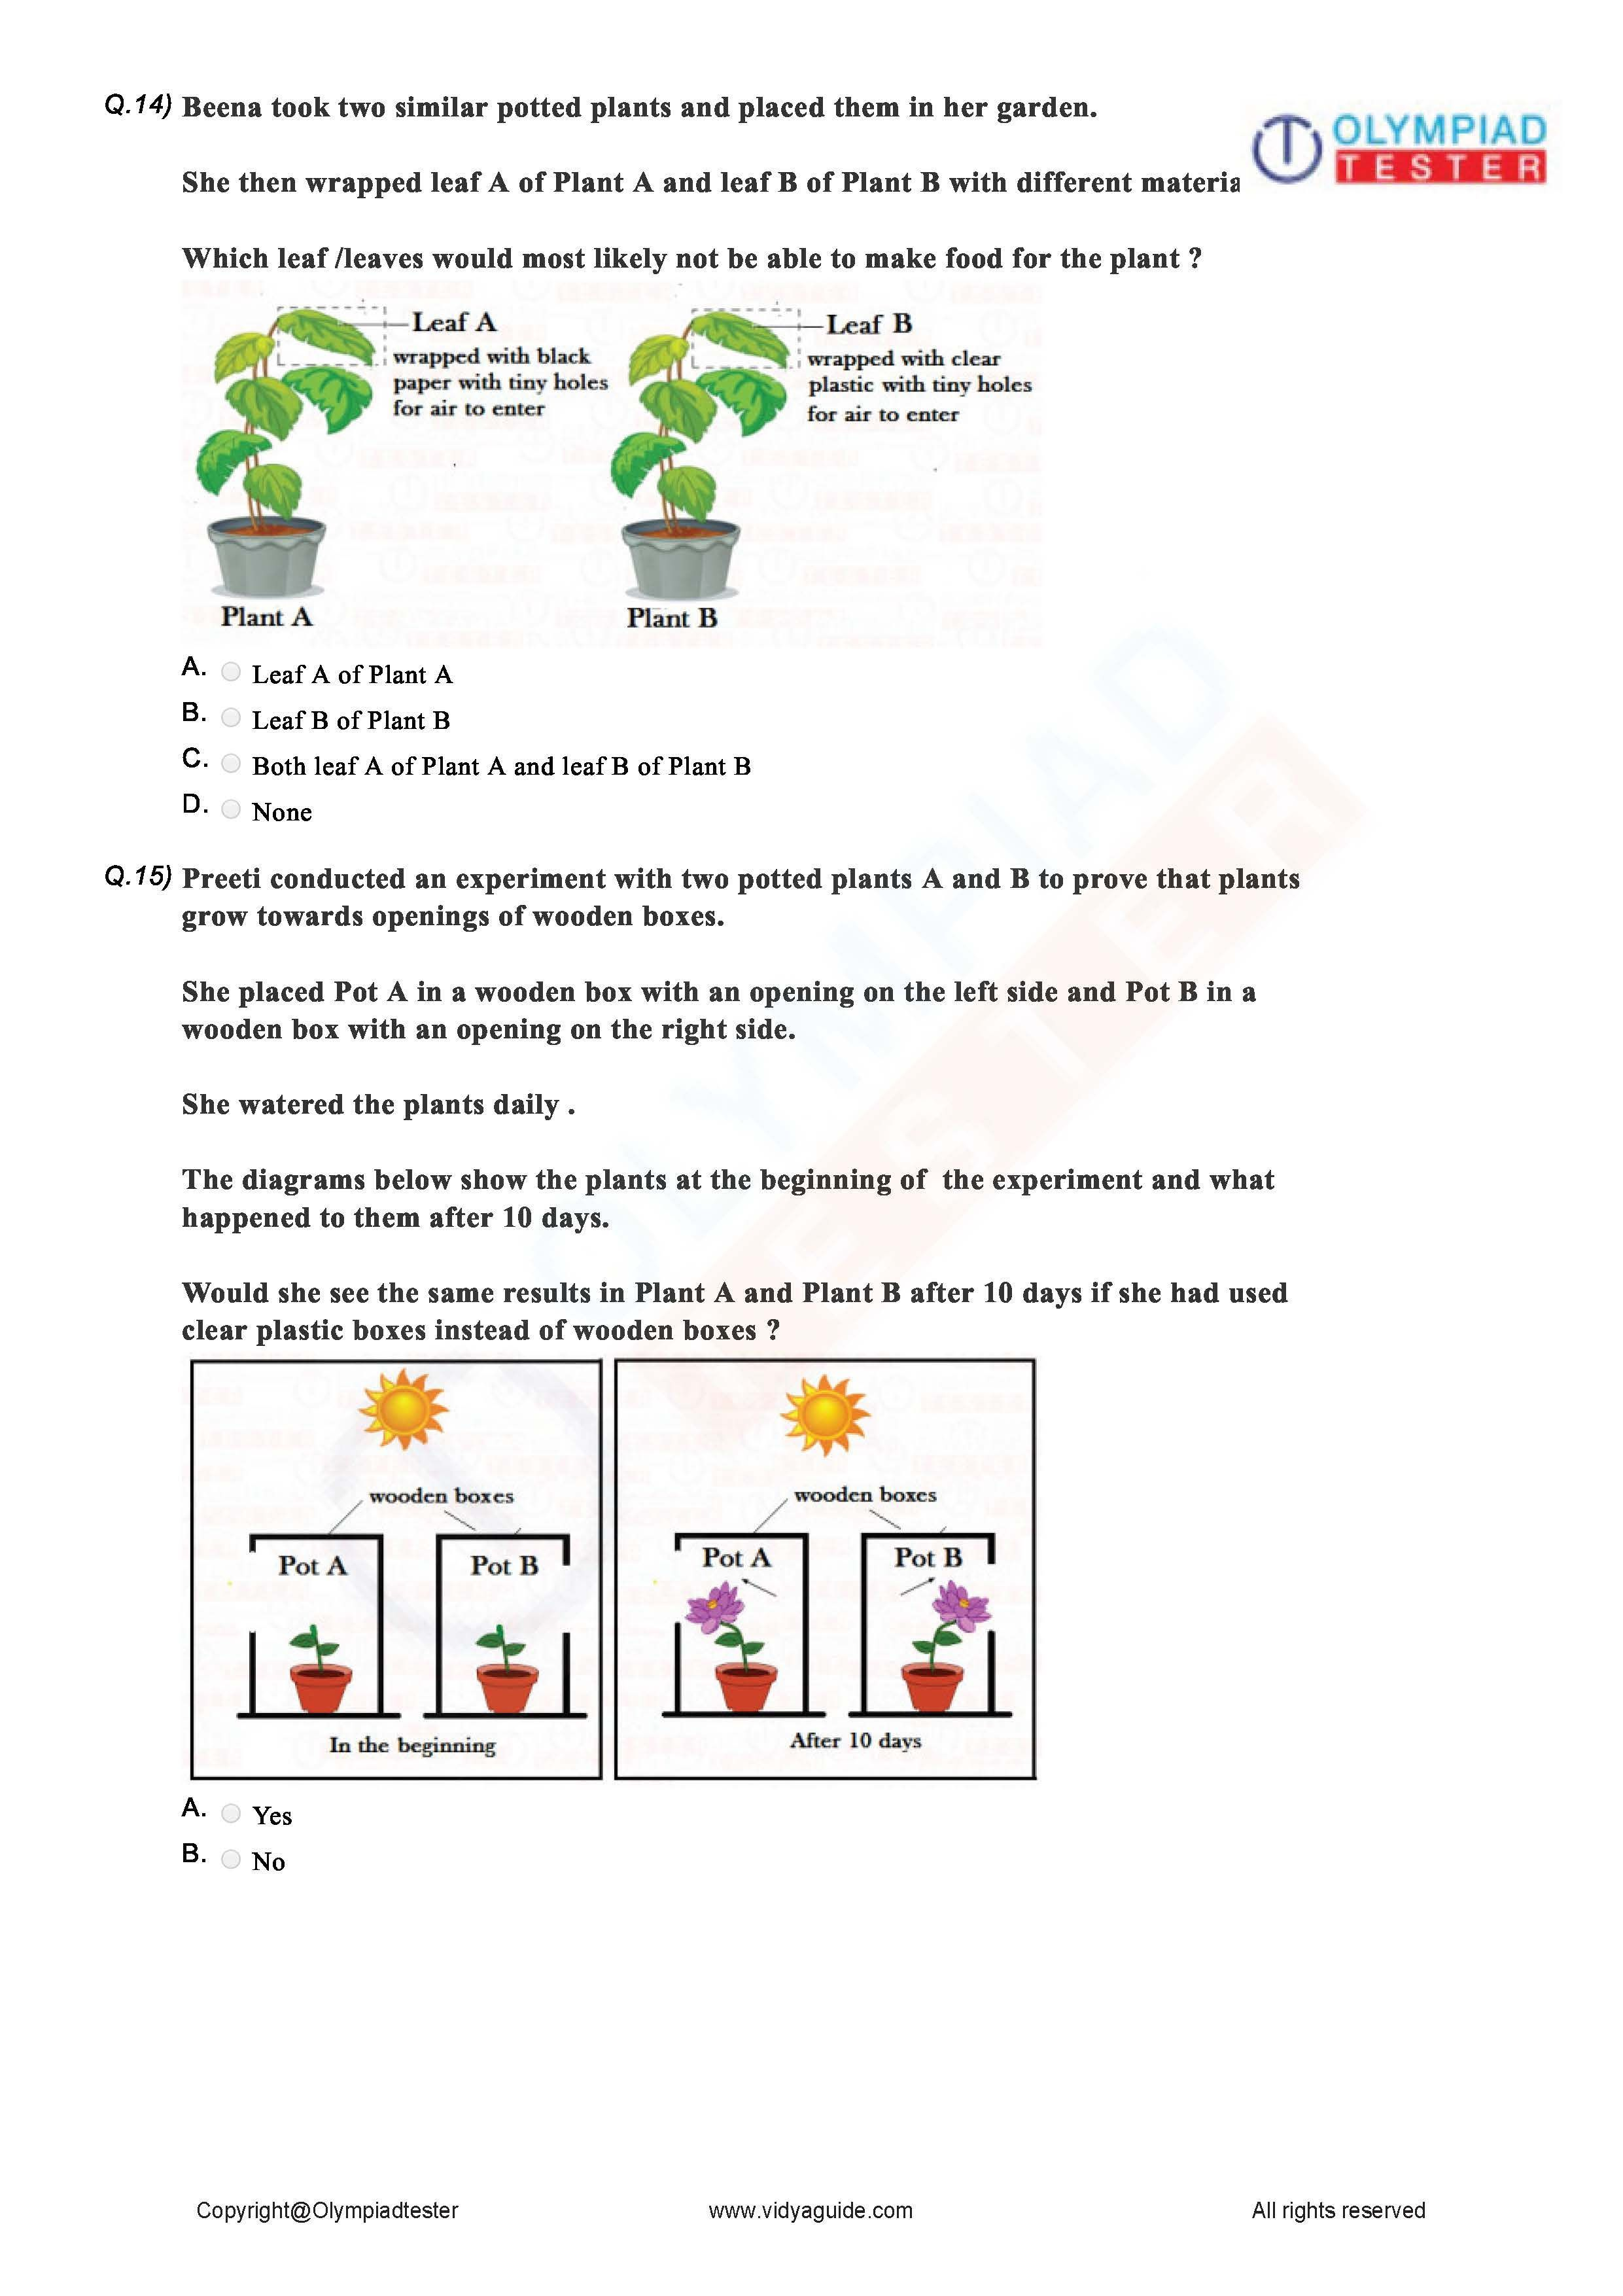 Download Class 2 Science Sample Papers As Printable Worksheets Human Body Worksheets Body Systems Exam Preparation [ 3509 x 2481 Pixel ]